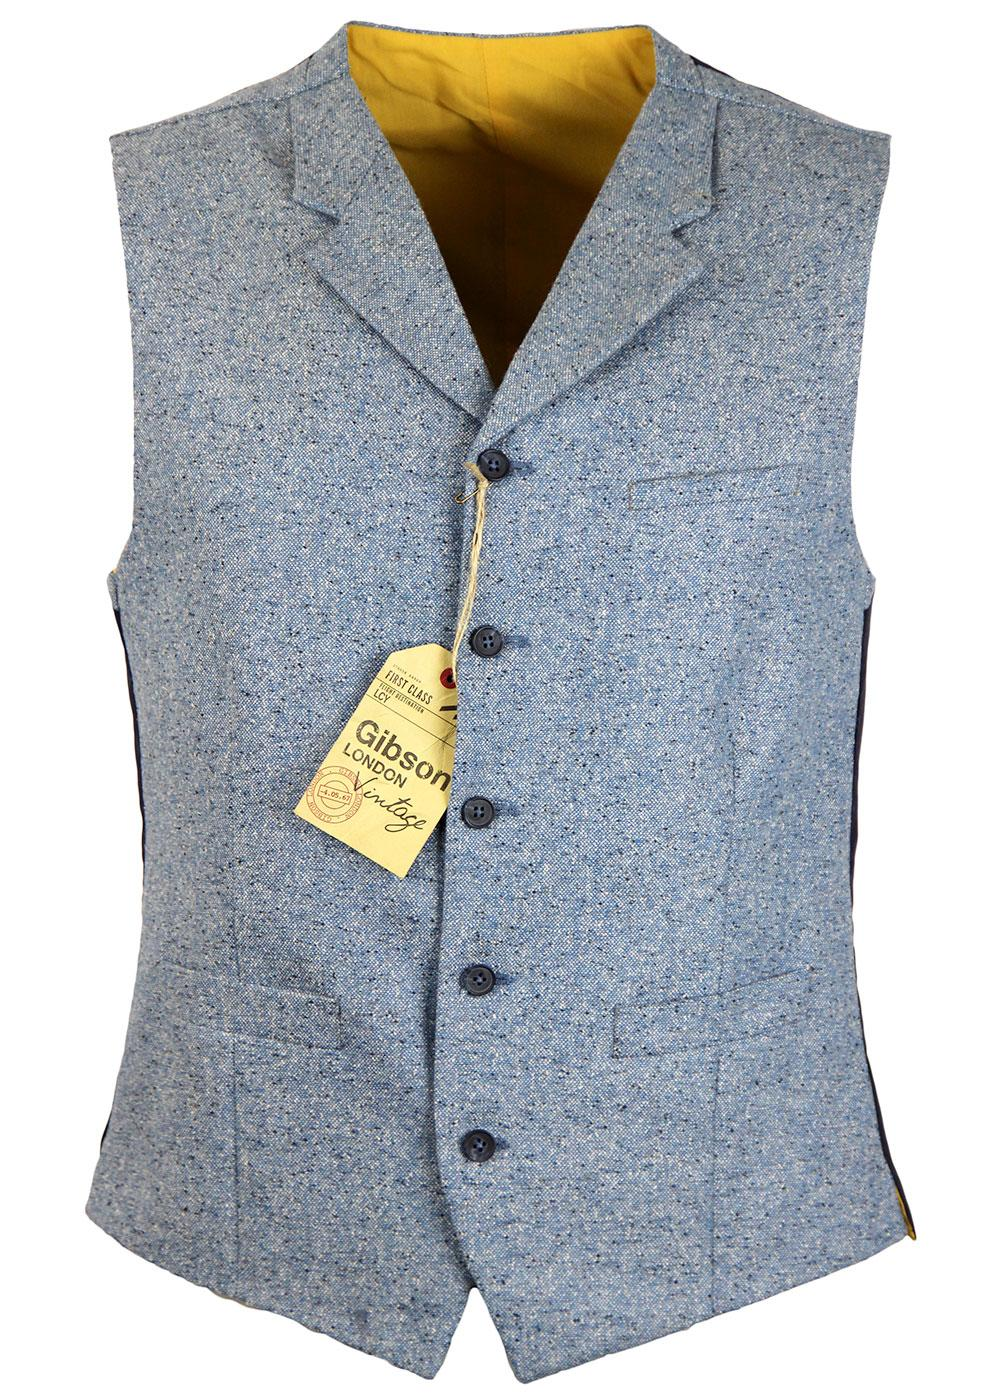 GIBSON LONDON 60s Mod Pale Blue Donegal Waistcoat